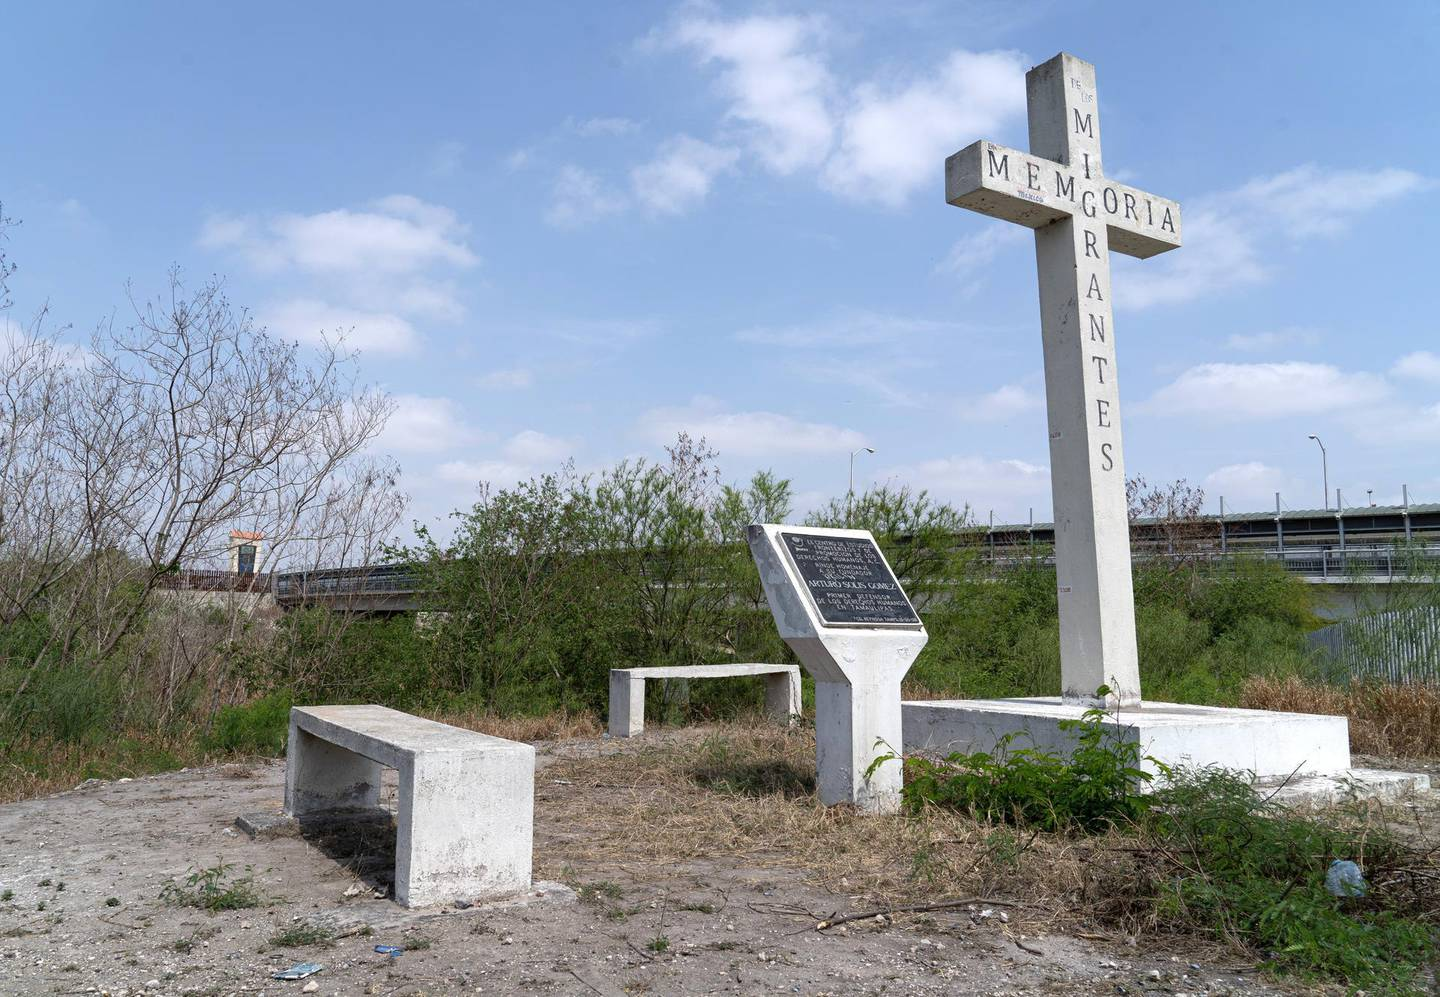 A shrine to migrants along the banks or the Rio Grande River in Reynosa, Mexico. The US is on the other side of the river. Willy Lowry/ The National